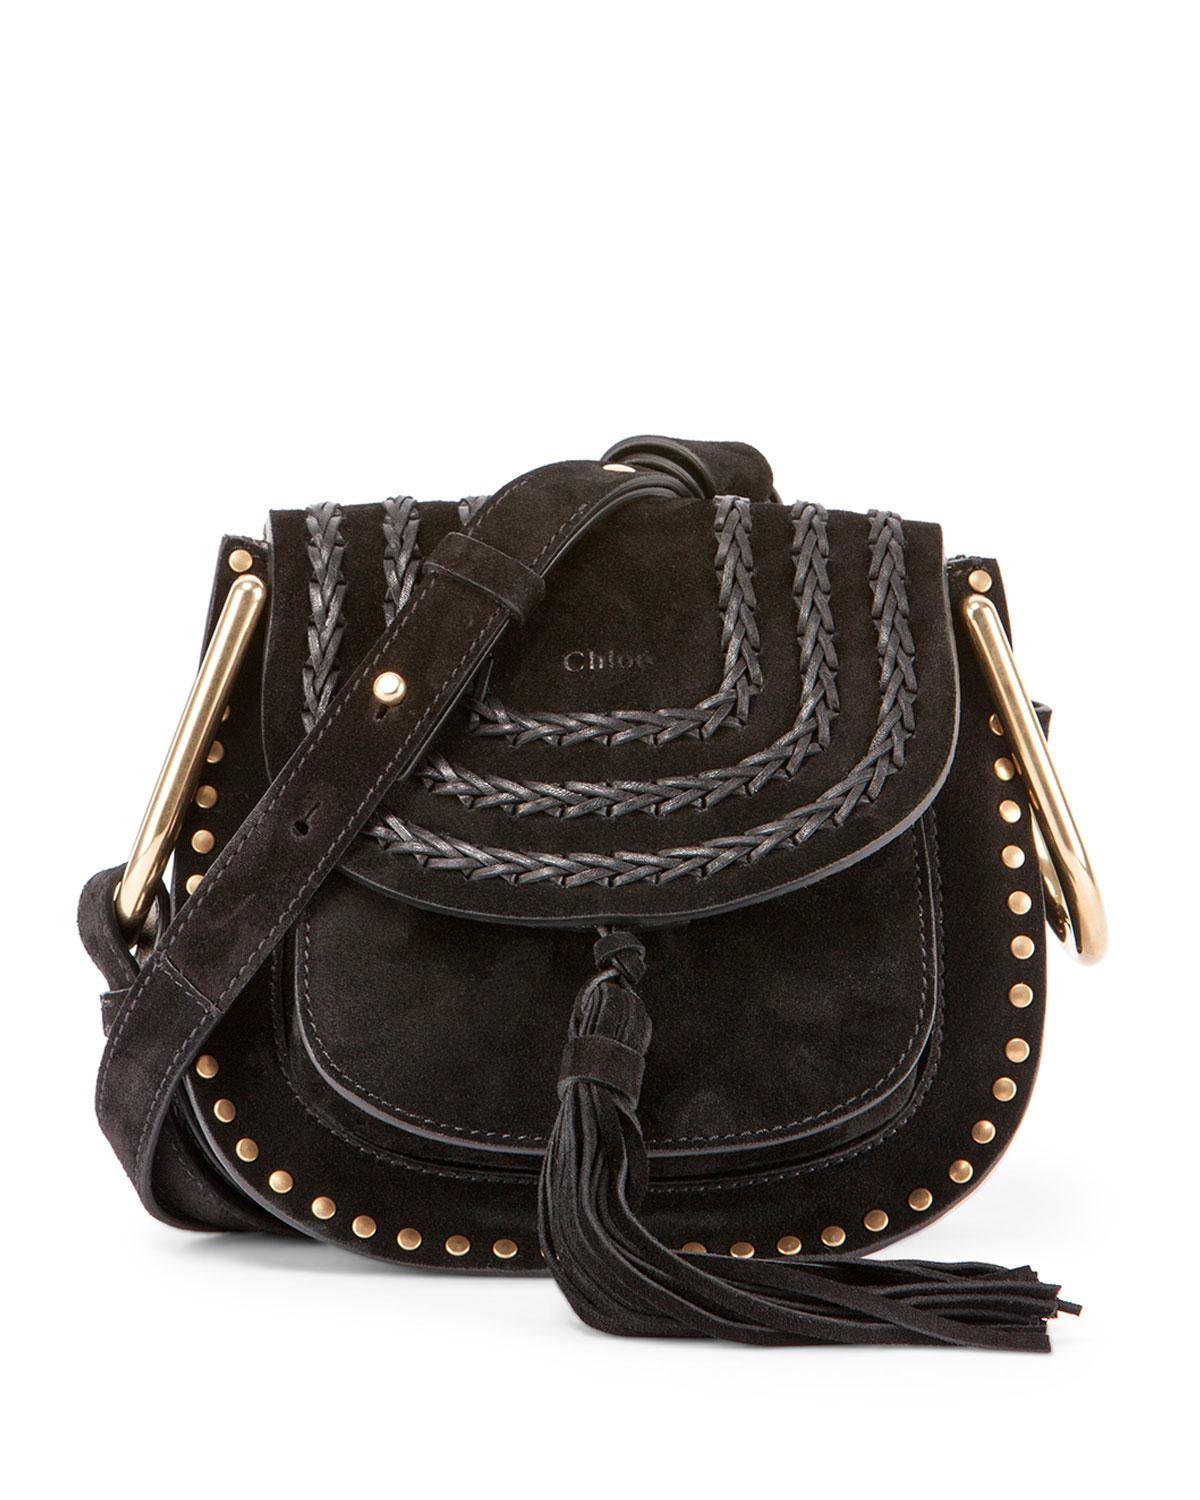 chloe replica handbag - chloe hudson small mini charm leather shoulder bag, chloe handbags ...